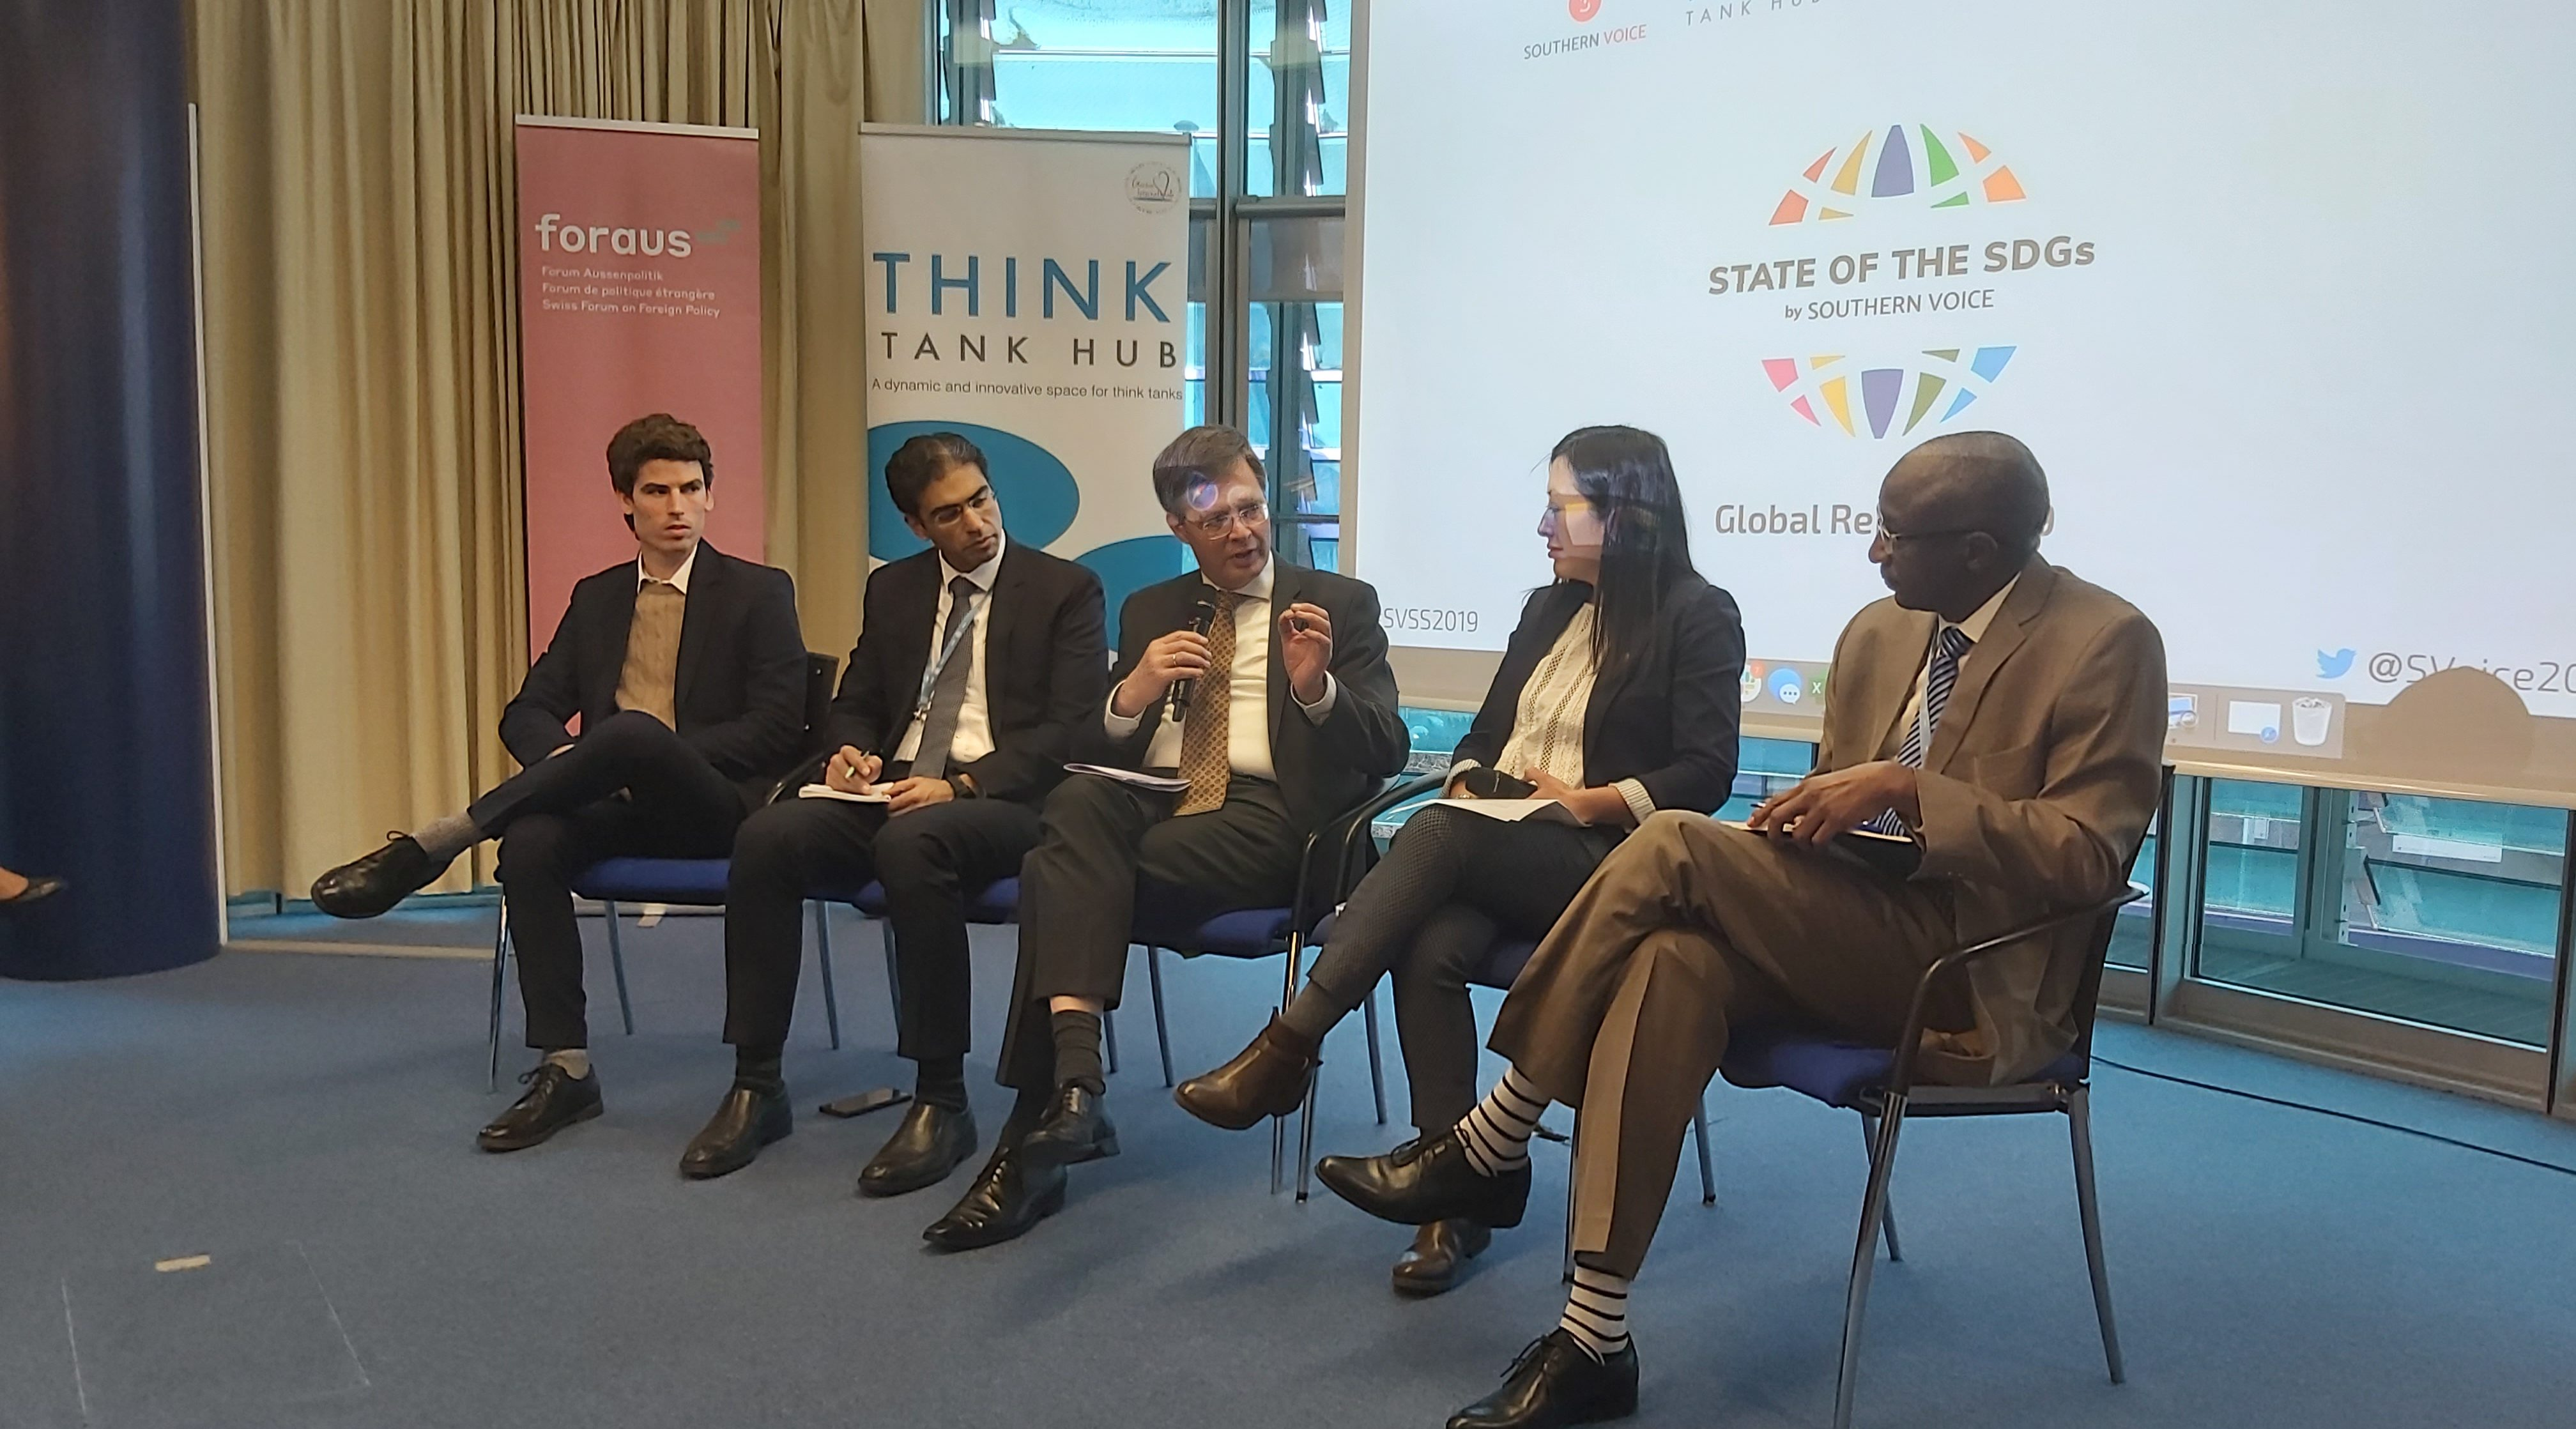 """Jan Peter Balkenende: """"The private sector needs to be engaged in sustainability"""""""